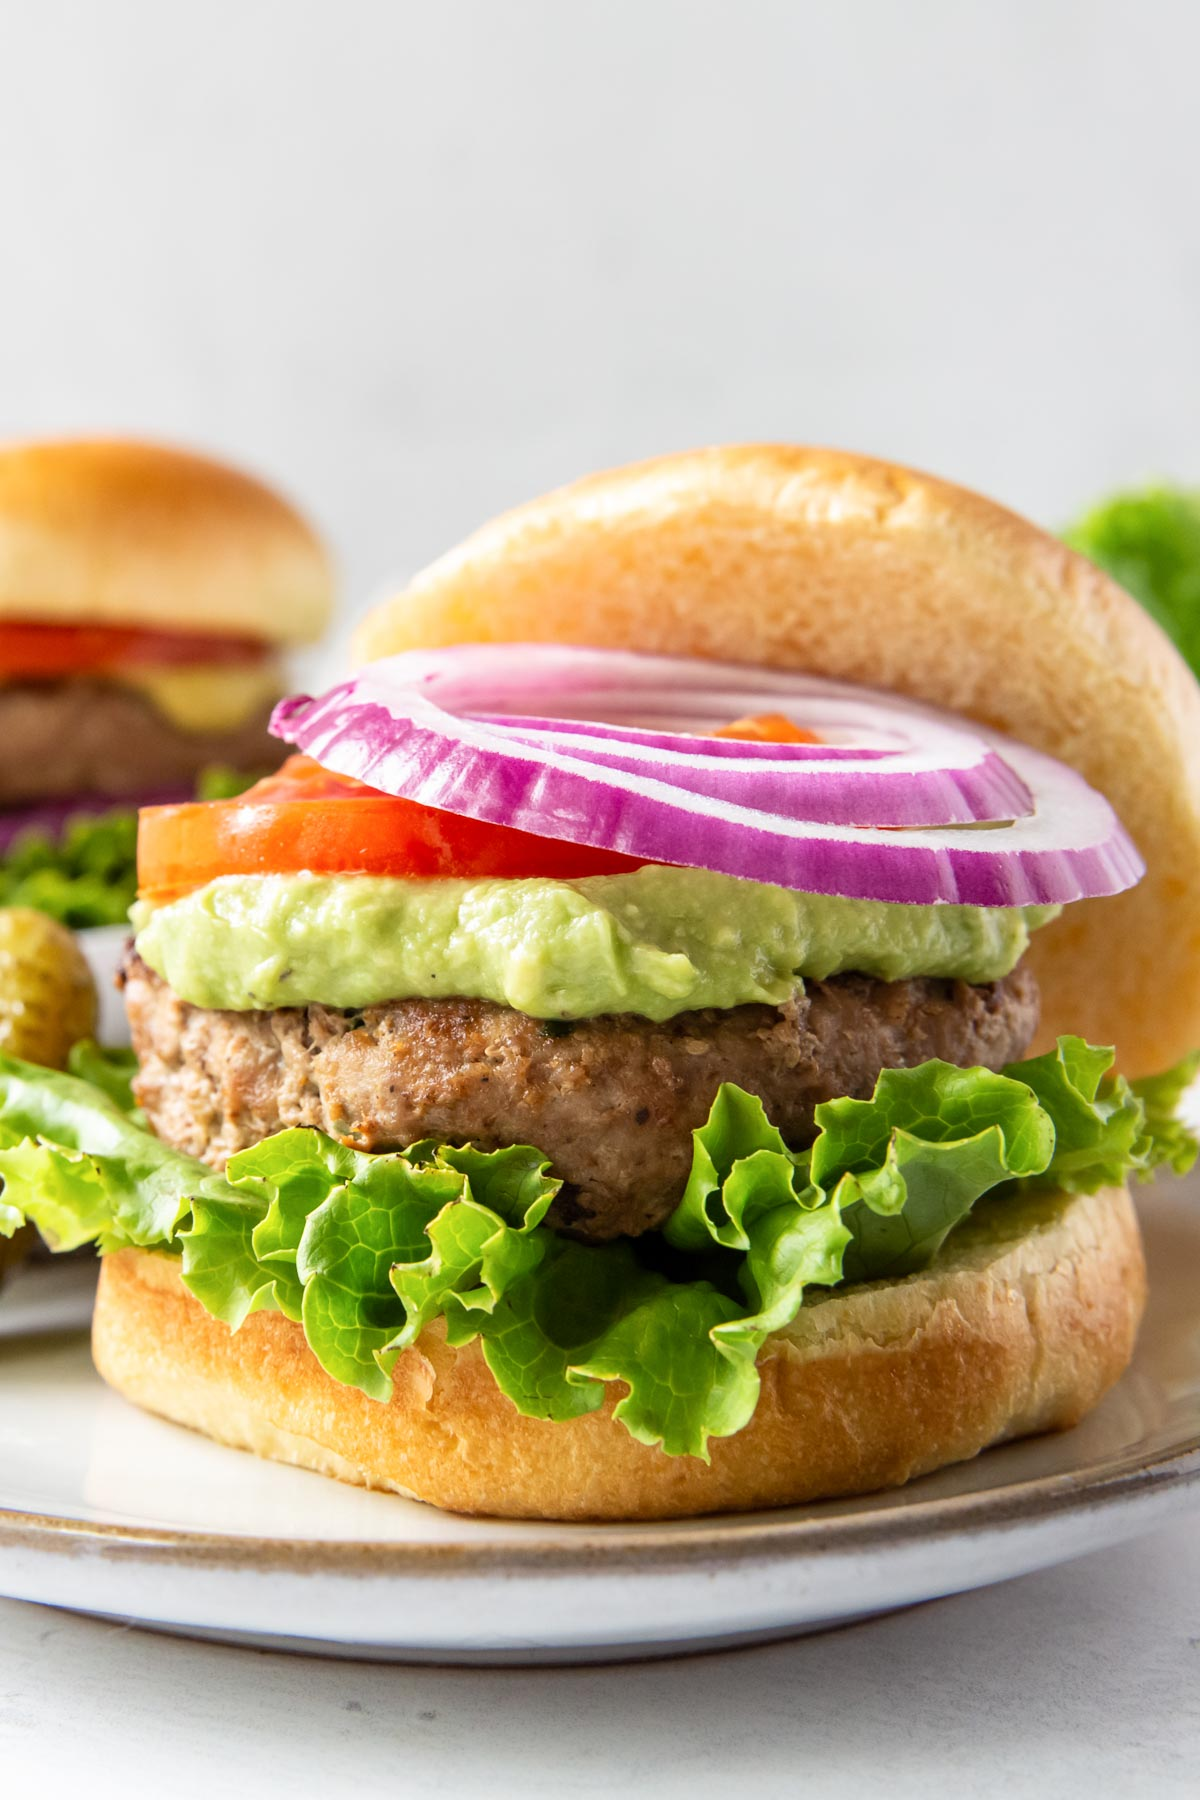 turkey burger served on a bun with lettuce, guacamole, tomato and red onion